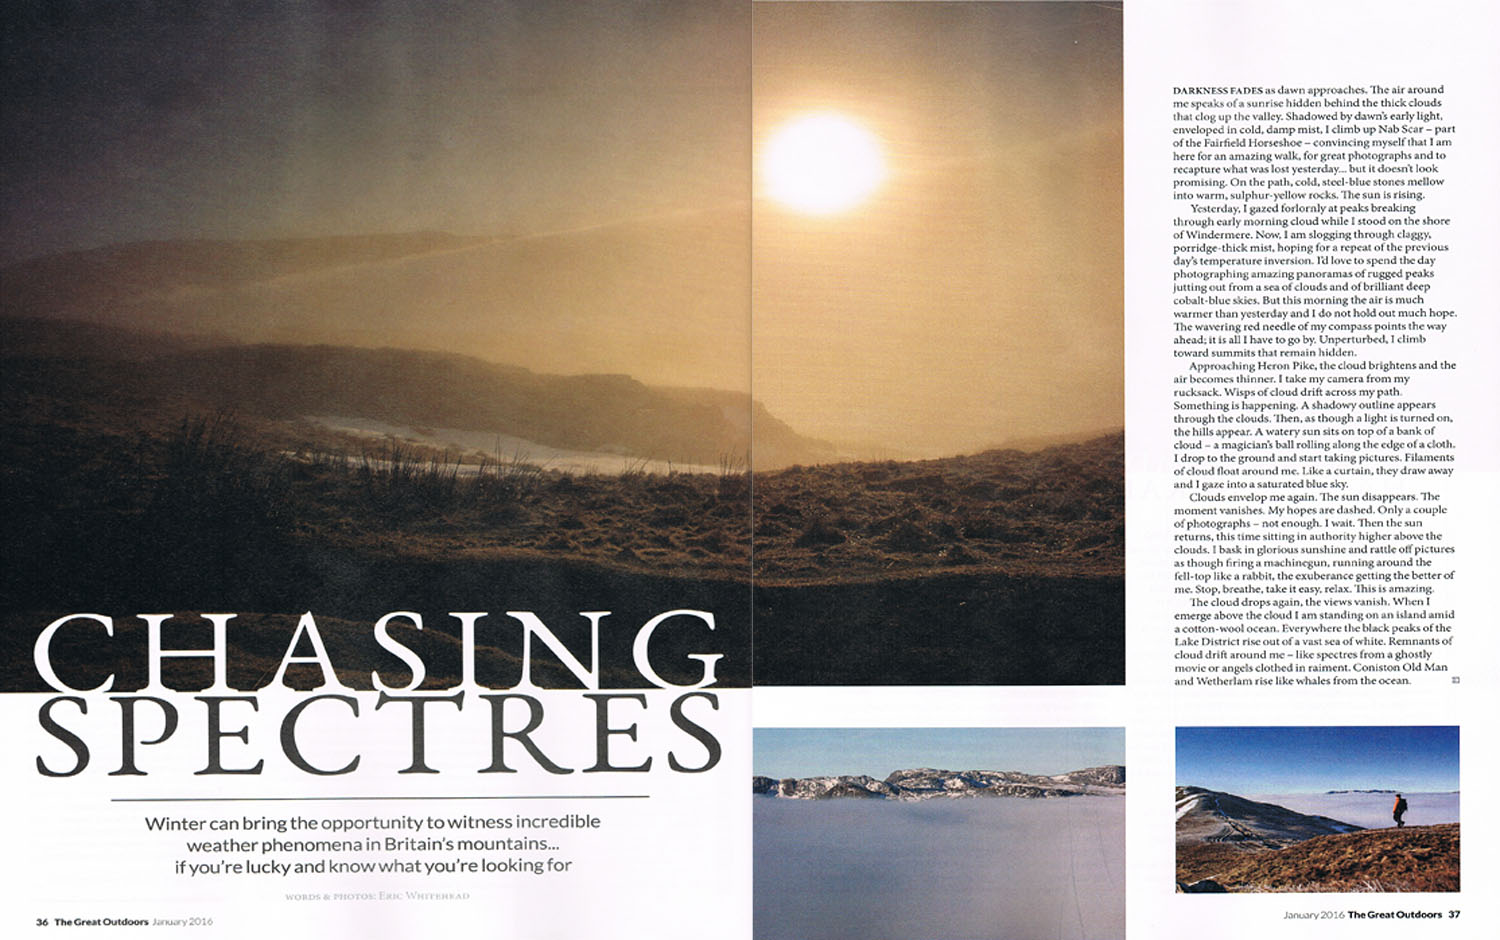 Chasing Spectres, published The Great Outdoors